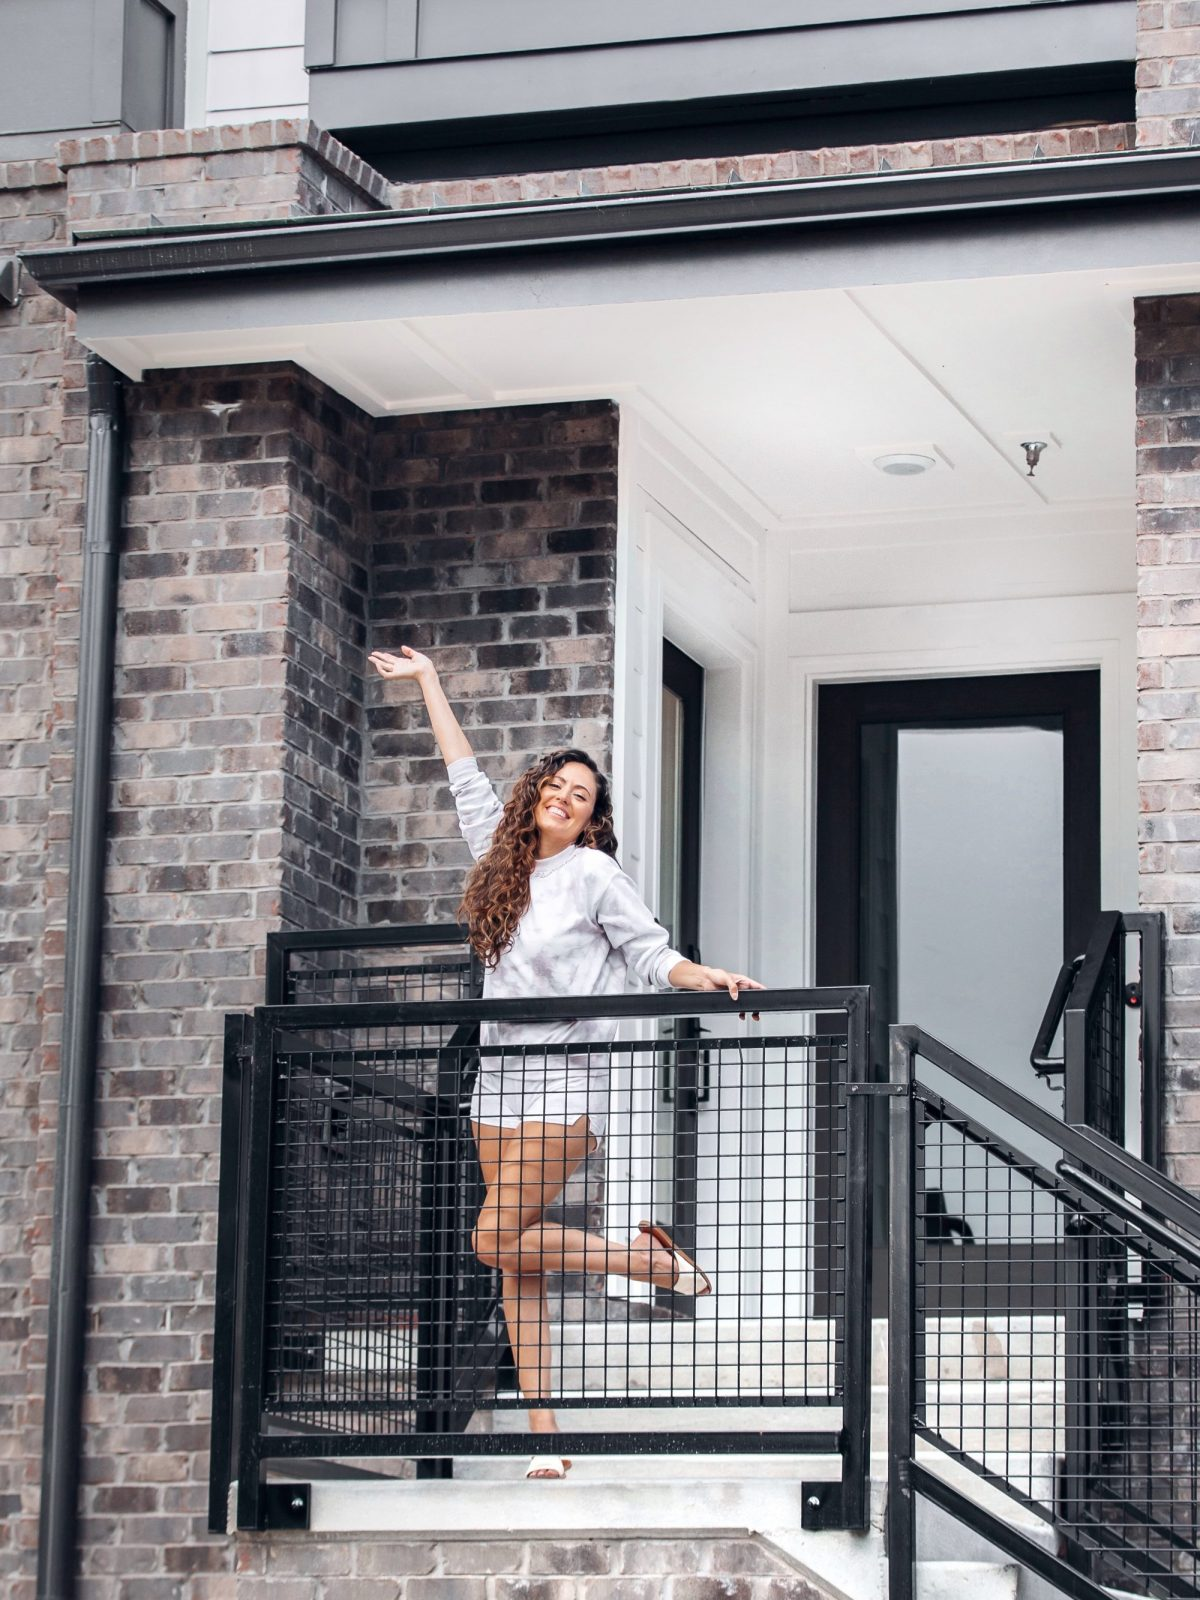 everything you need to know about buying your first home, first time home buyers guide, how to purchase a home, buying your first home, getting a home loan, getting a mortgage loan